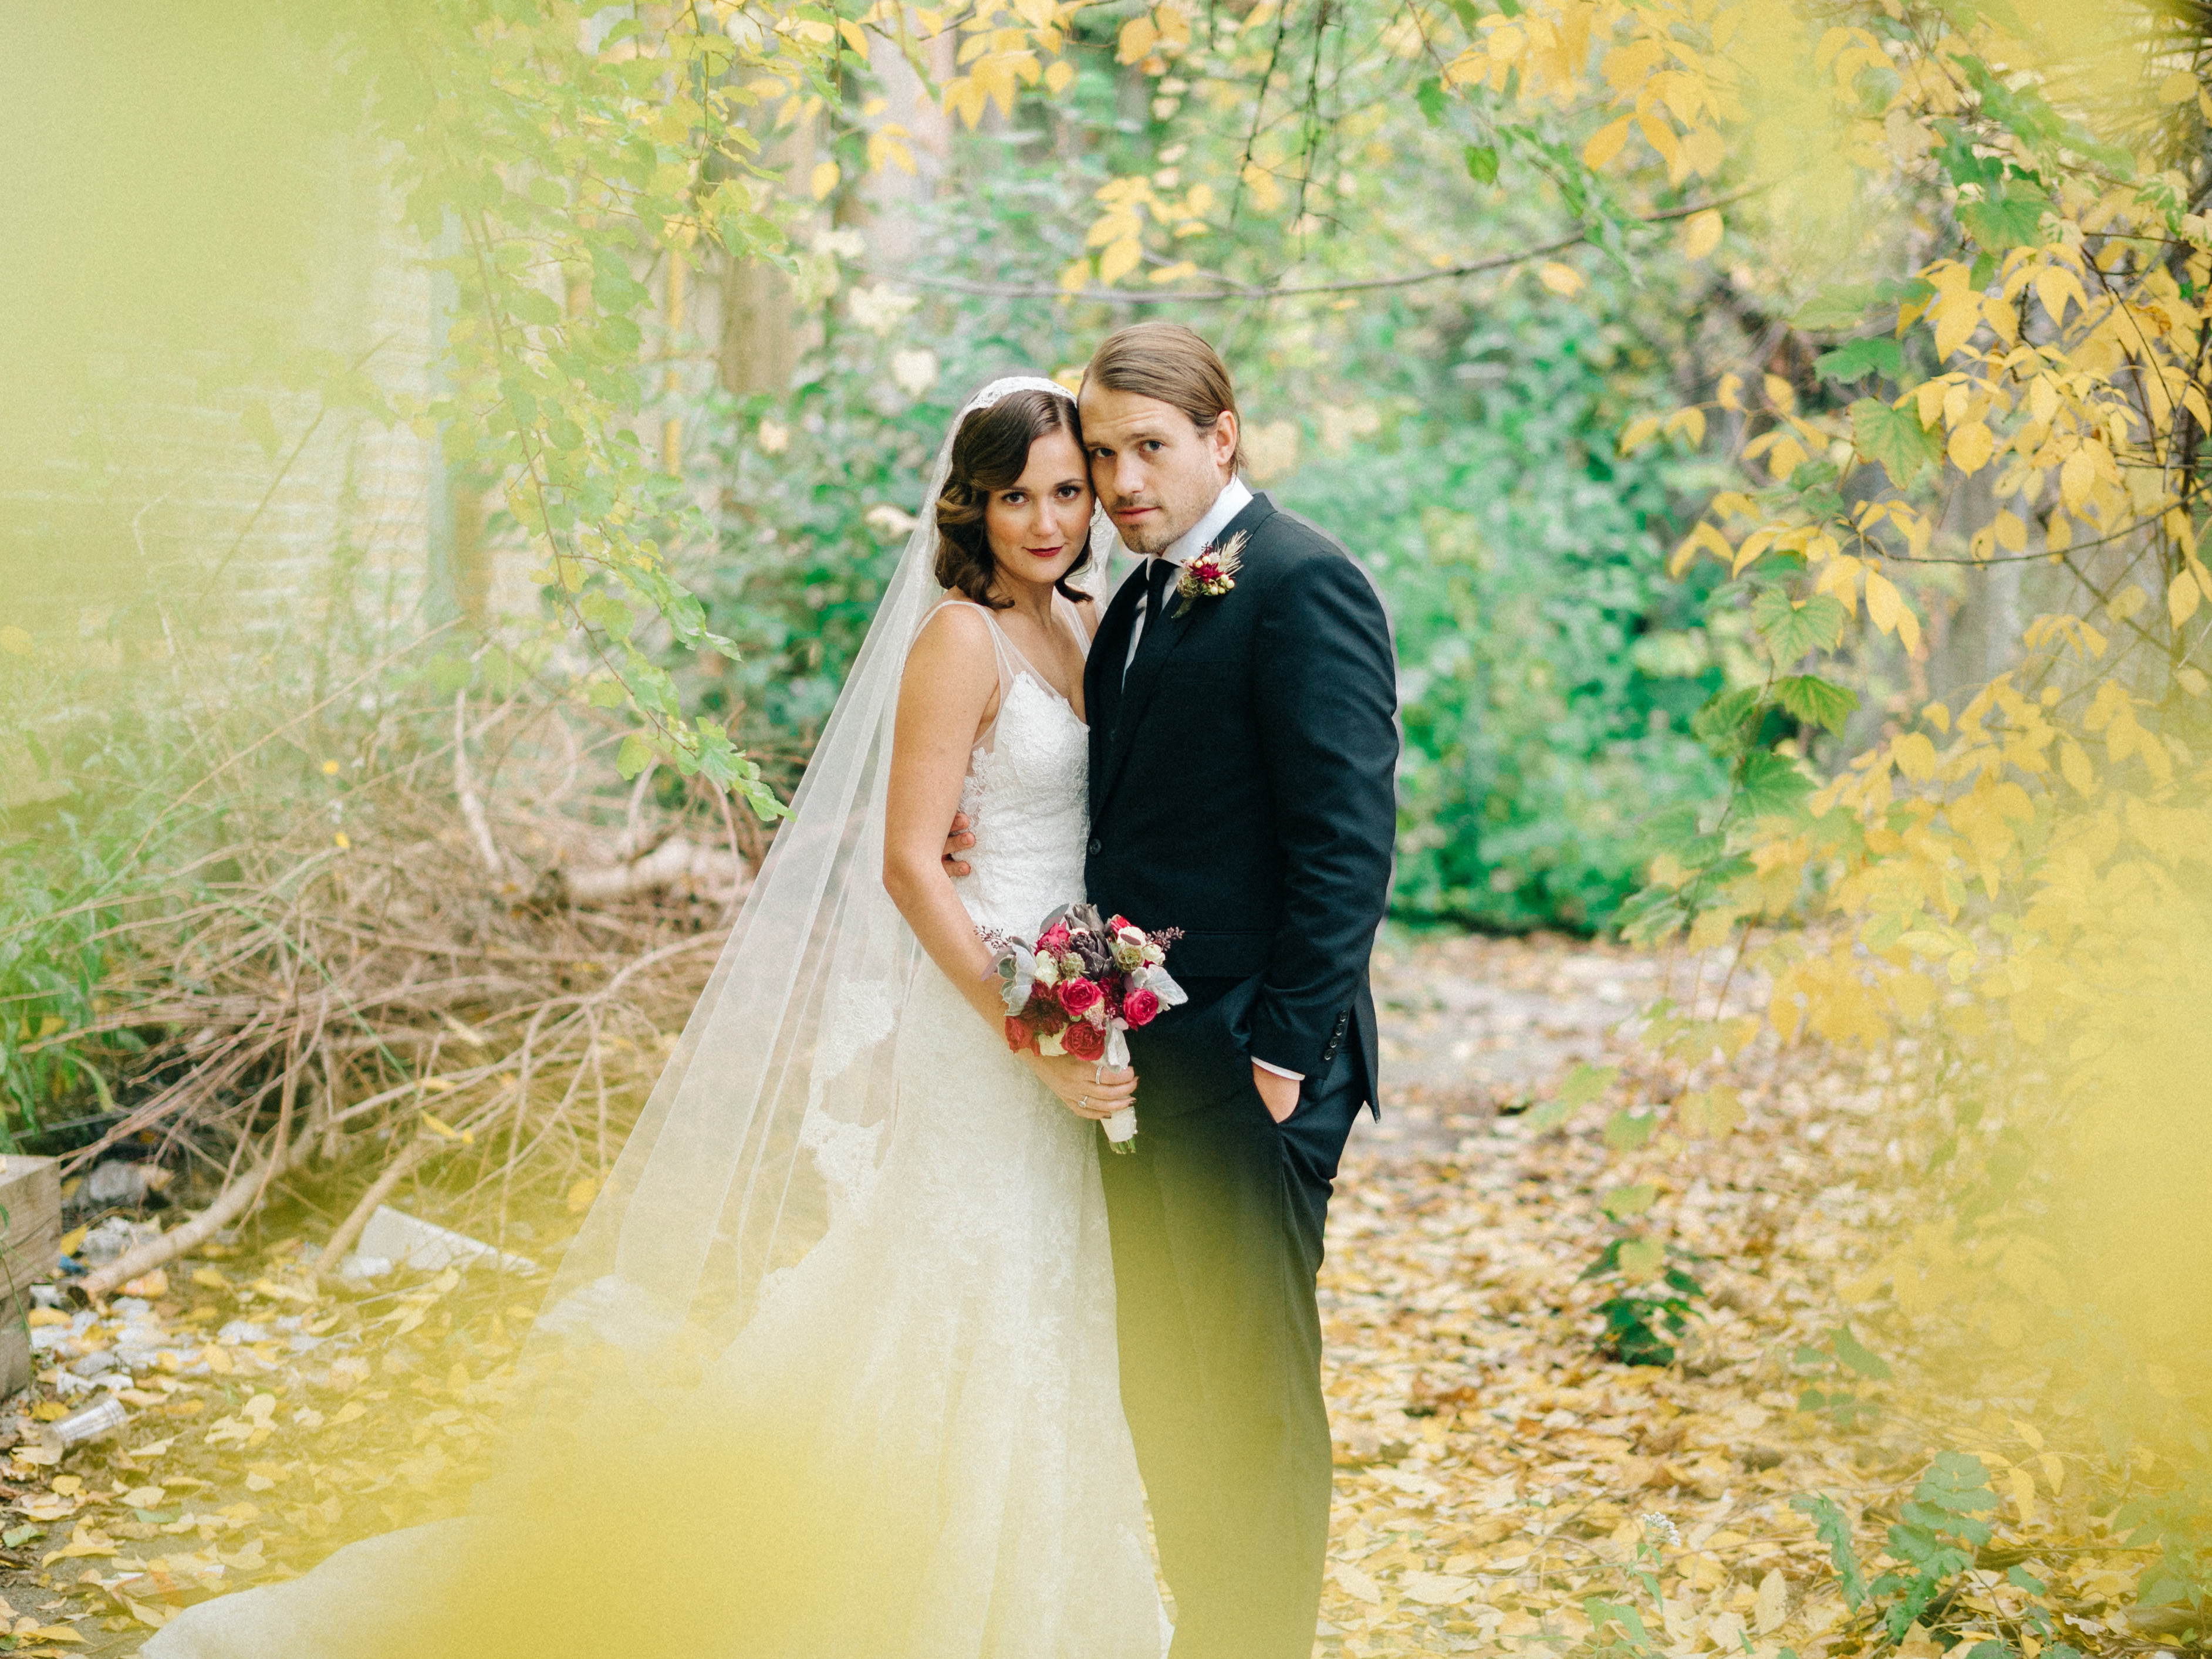 Our gorgeous couple, framed with fall foliage.